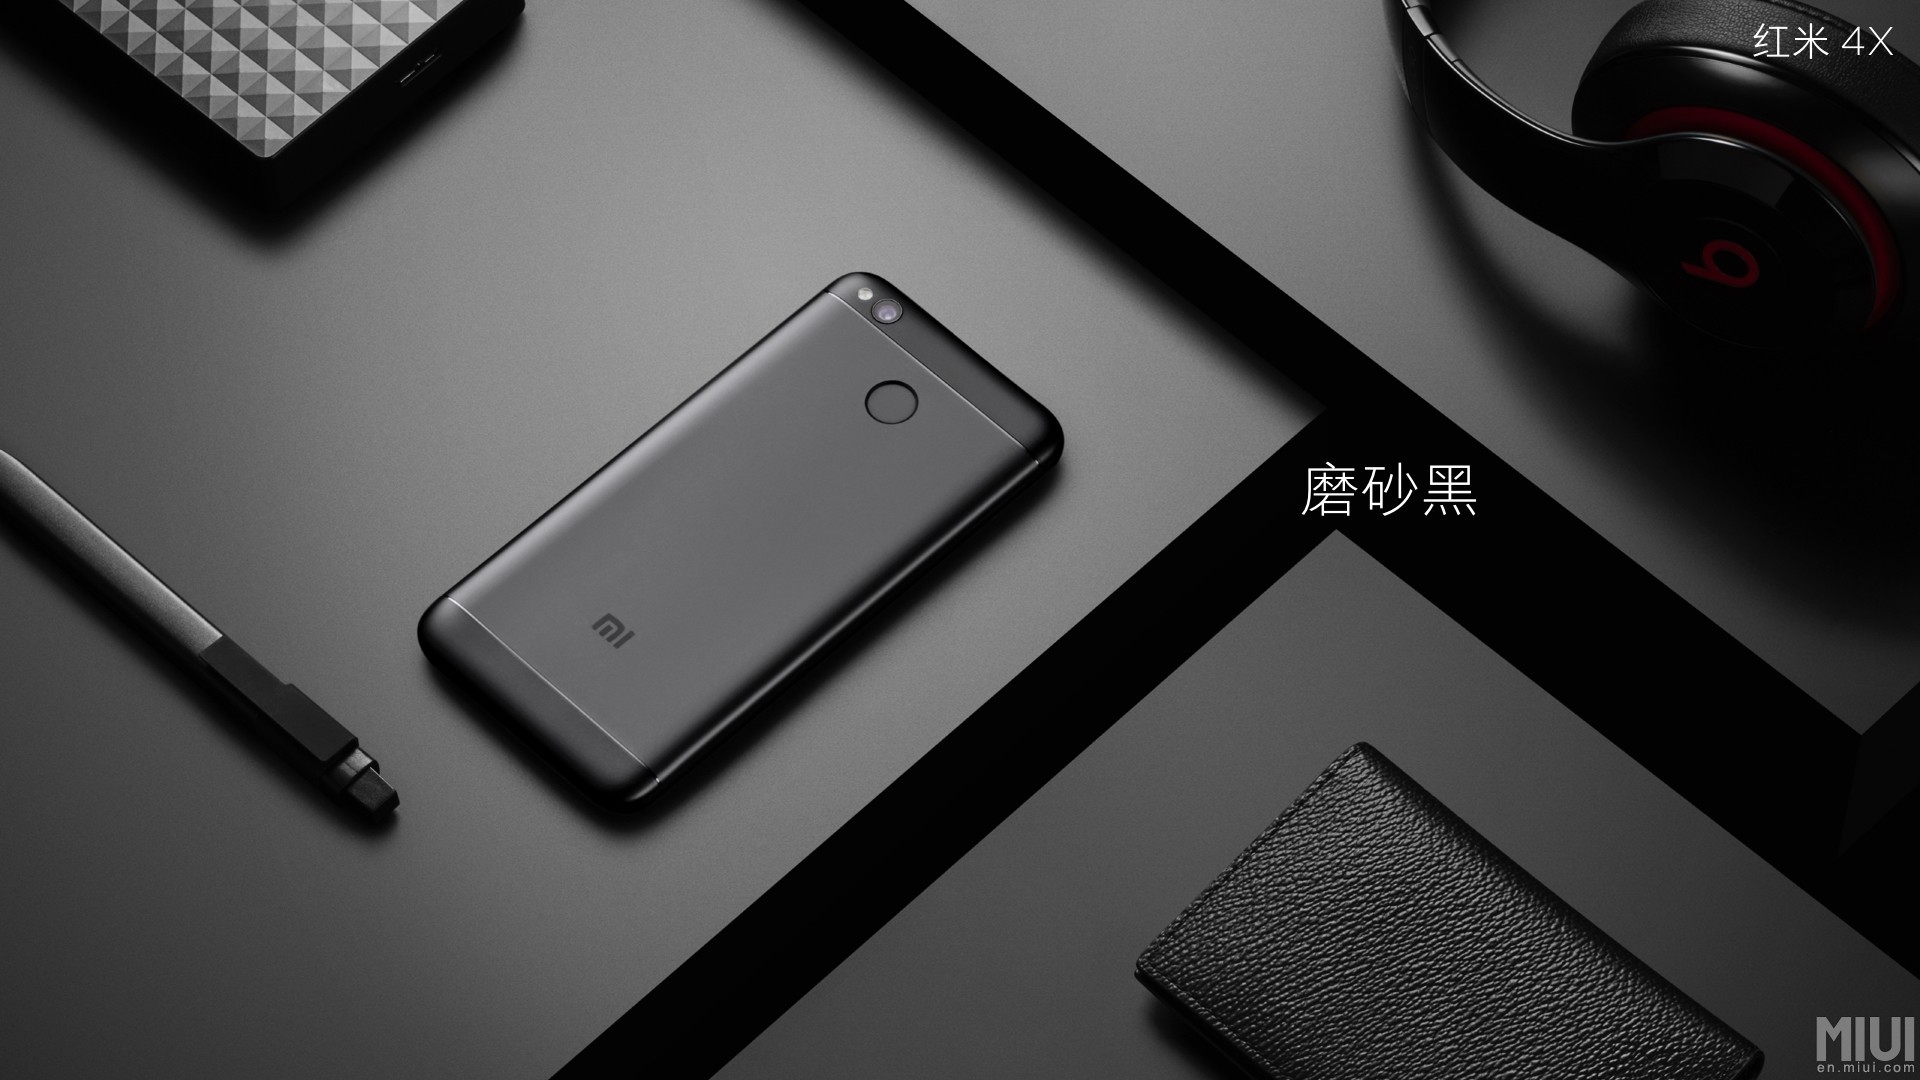 Redmi 4x Is Xiaomis Latest Low Cost Smartphone With